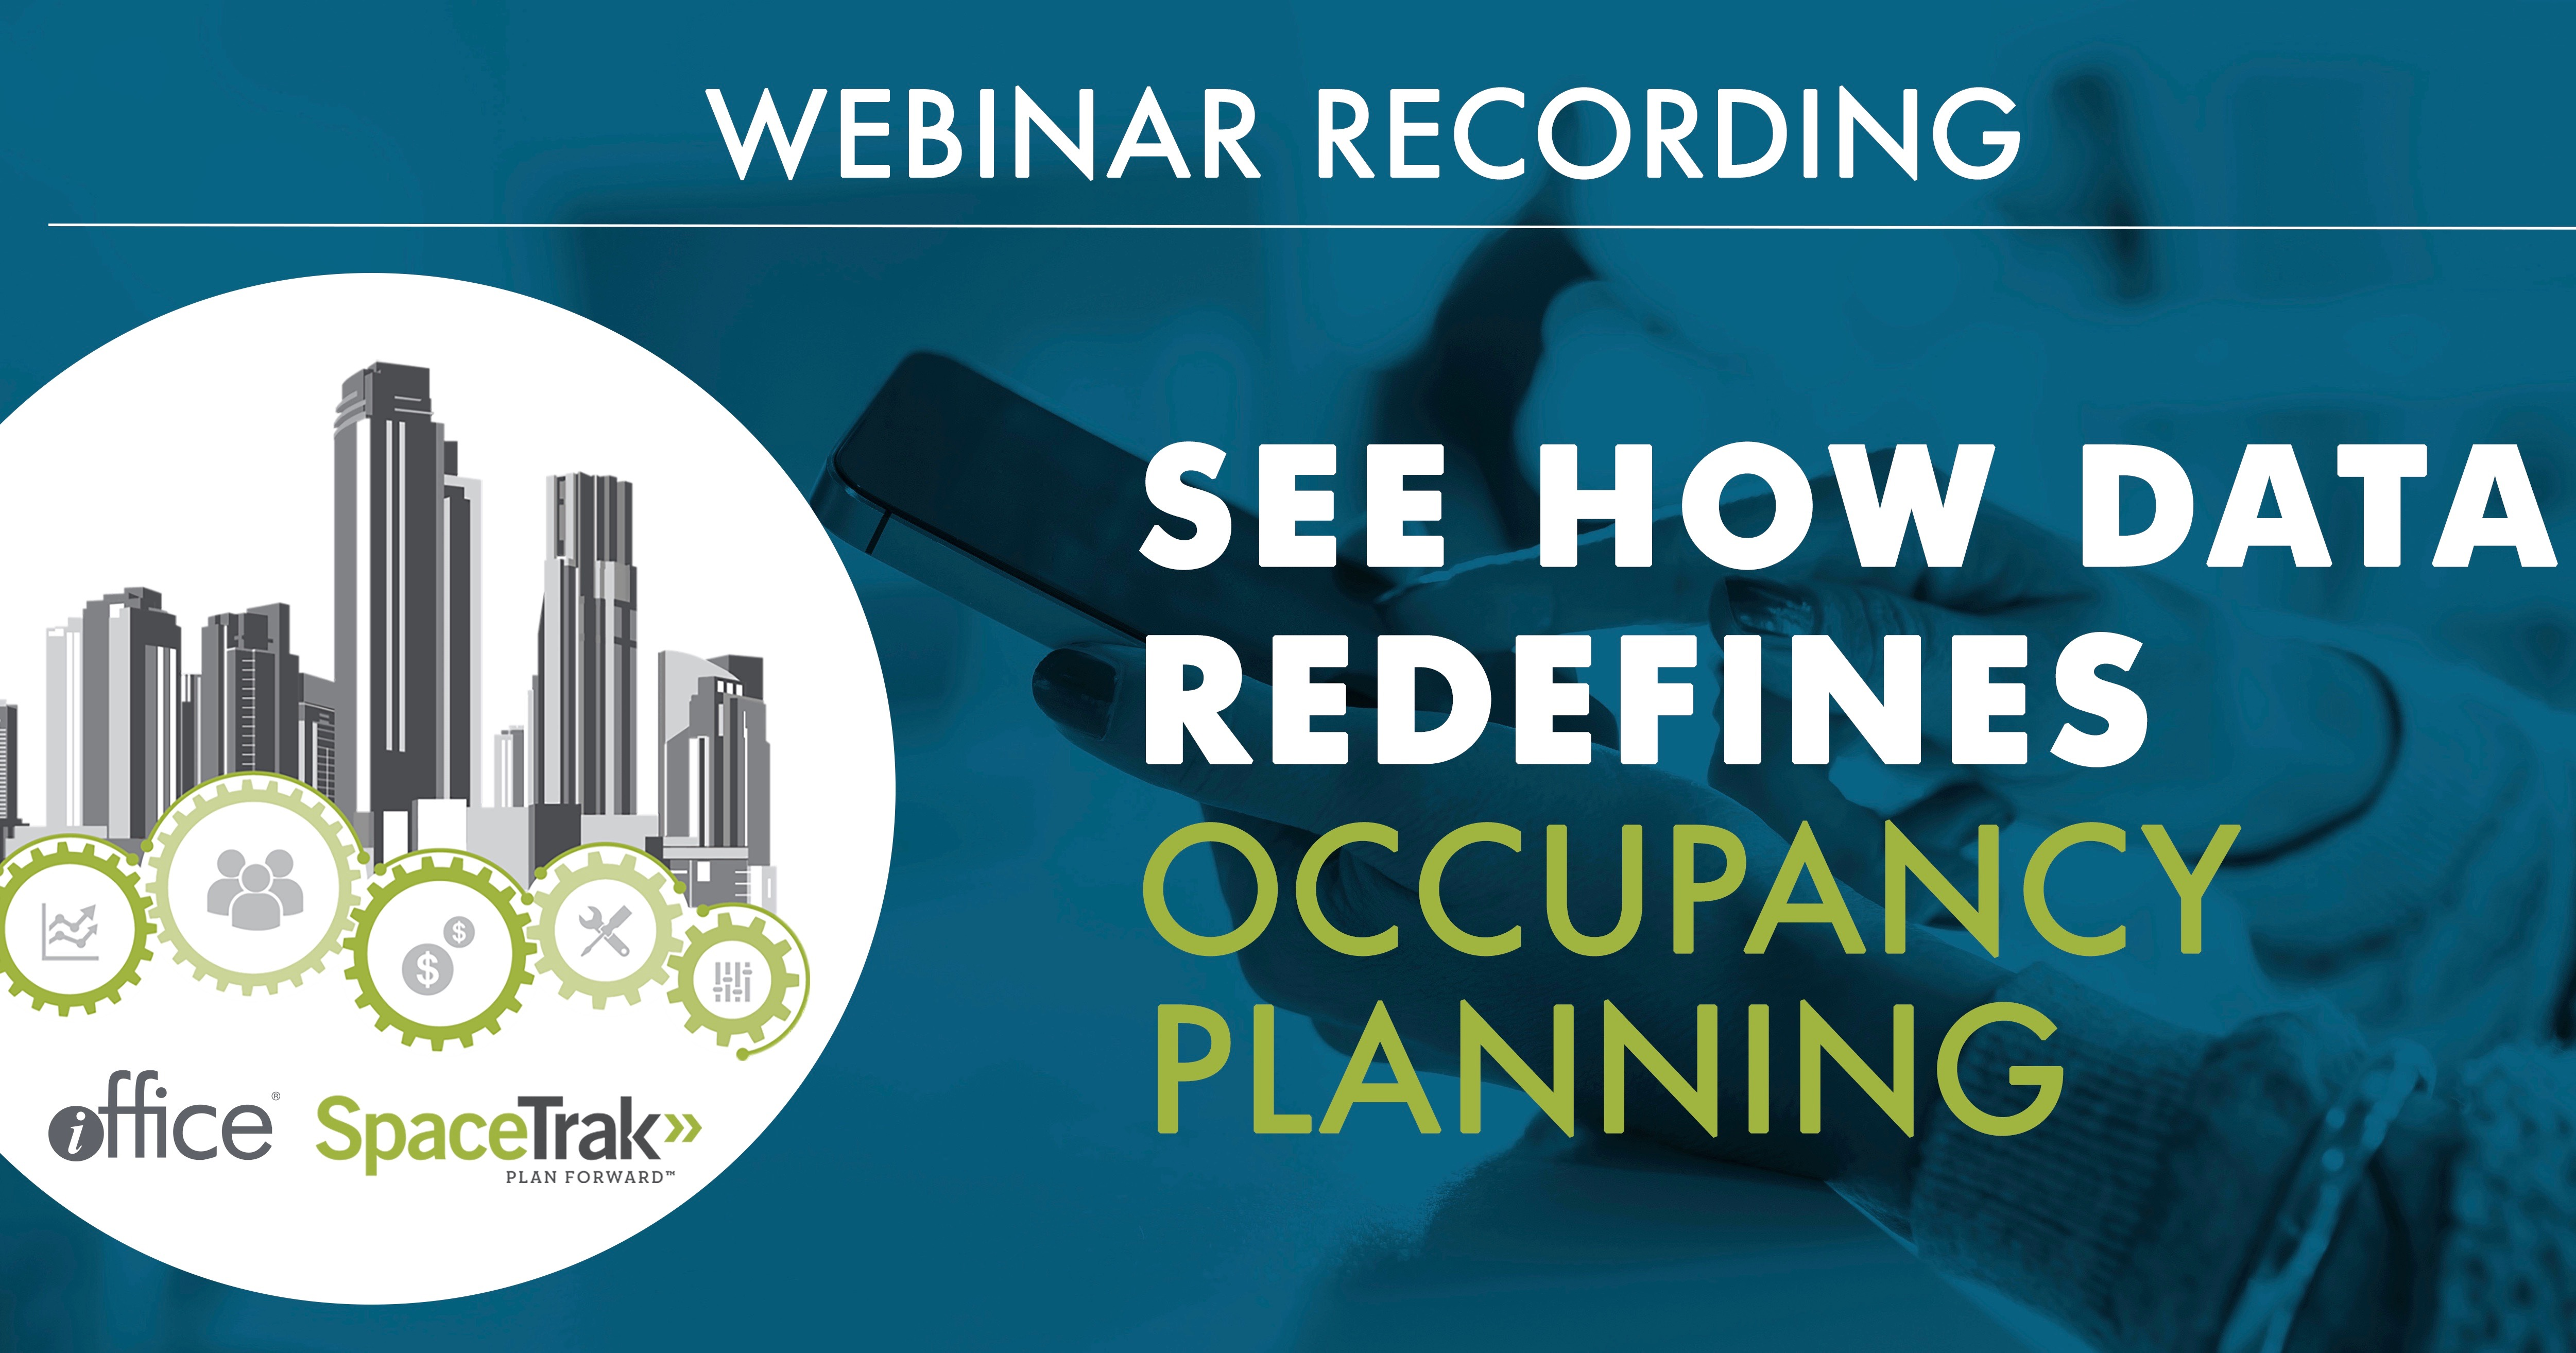 See How Data Redefines Occupancy Planning